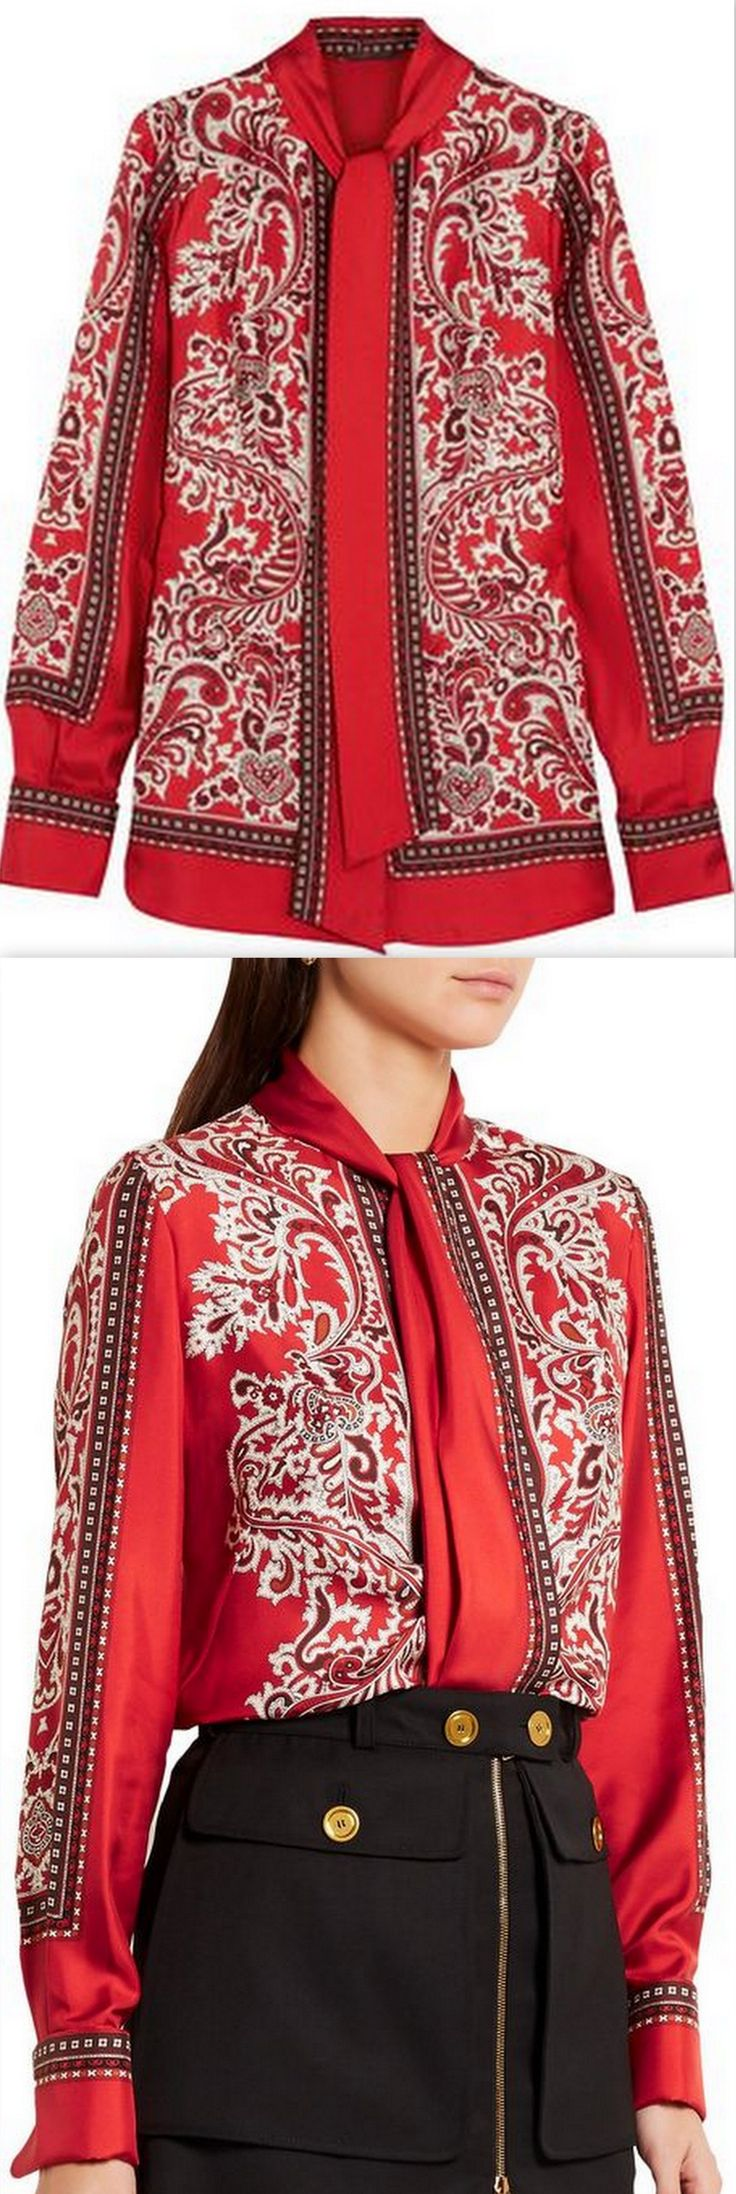 Paisley-Print Blouse, Red